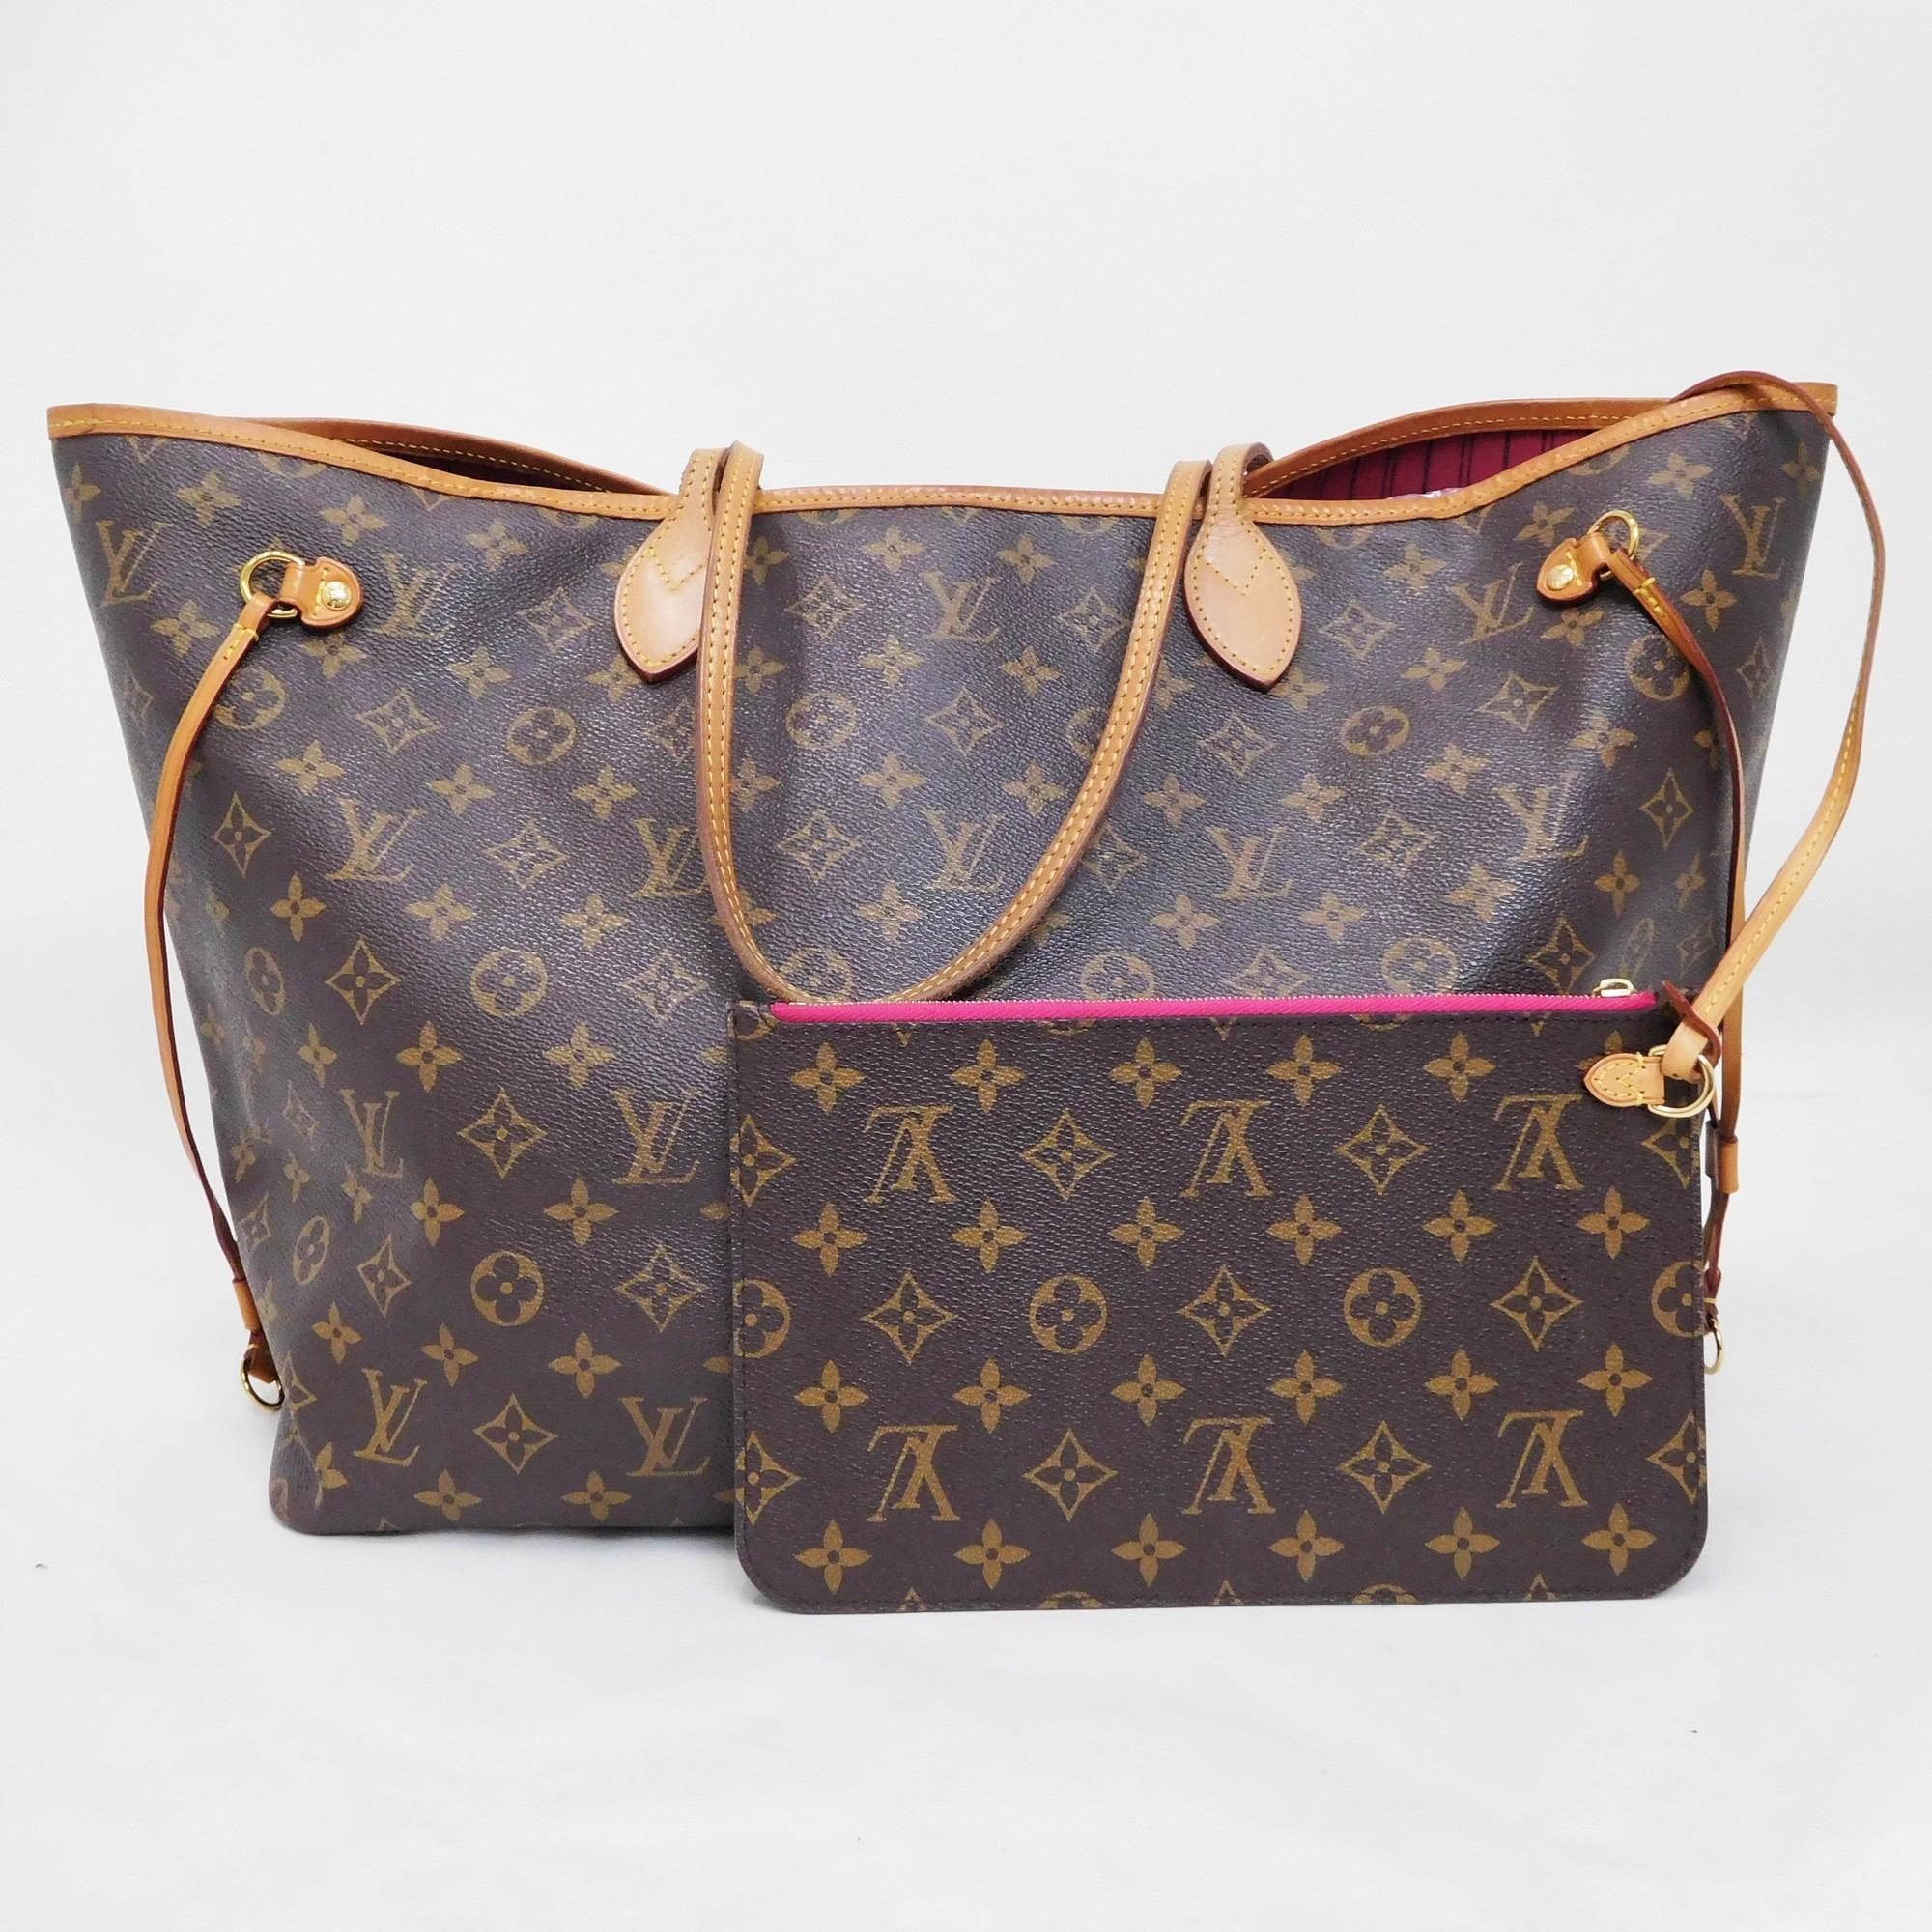 Auth Louis Vuitton Monogram Neverfull GM M41180 Women s Tote Bag Pivoine 92fc4bb5d6a30